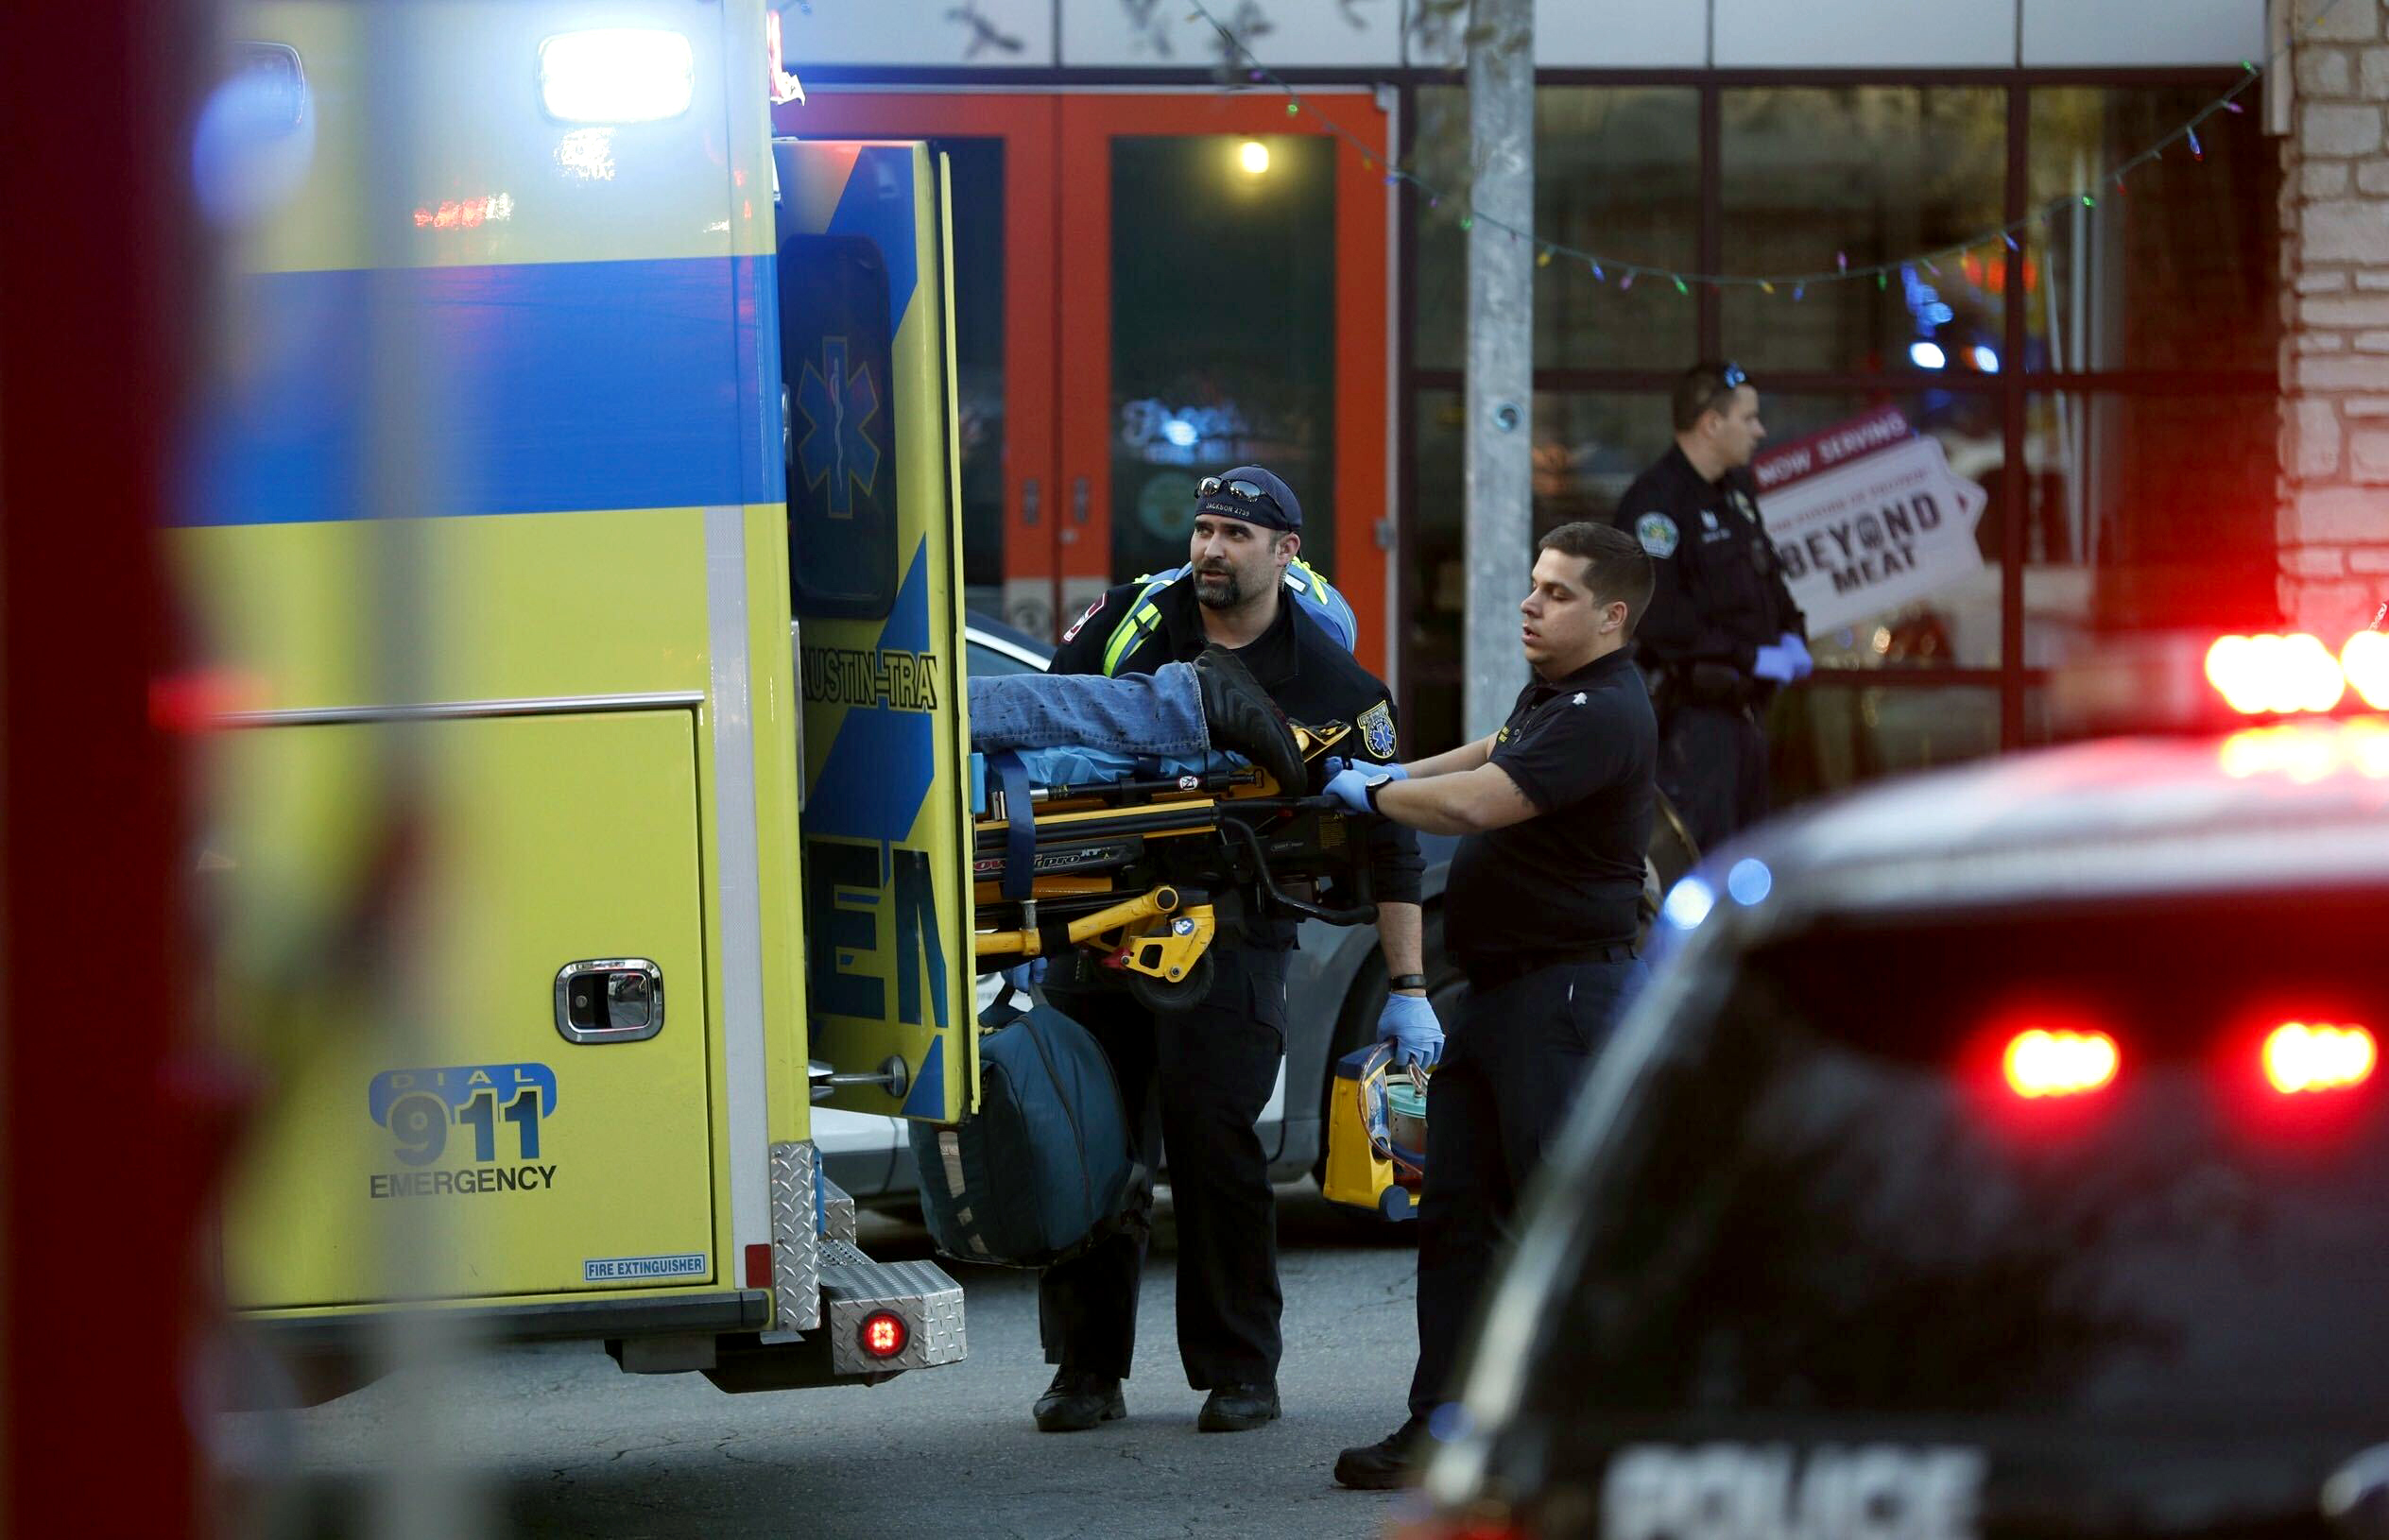 Paramedics transport a stabbing victim as Austin Police secure the area of a shopping complex in Austin, Texas, on Friday, Jan. 3, 2020.